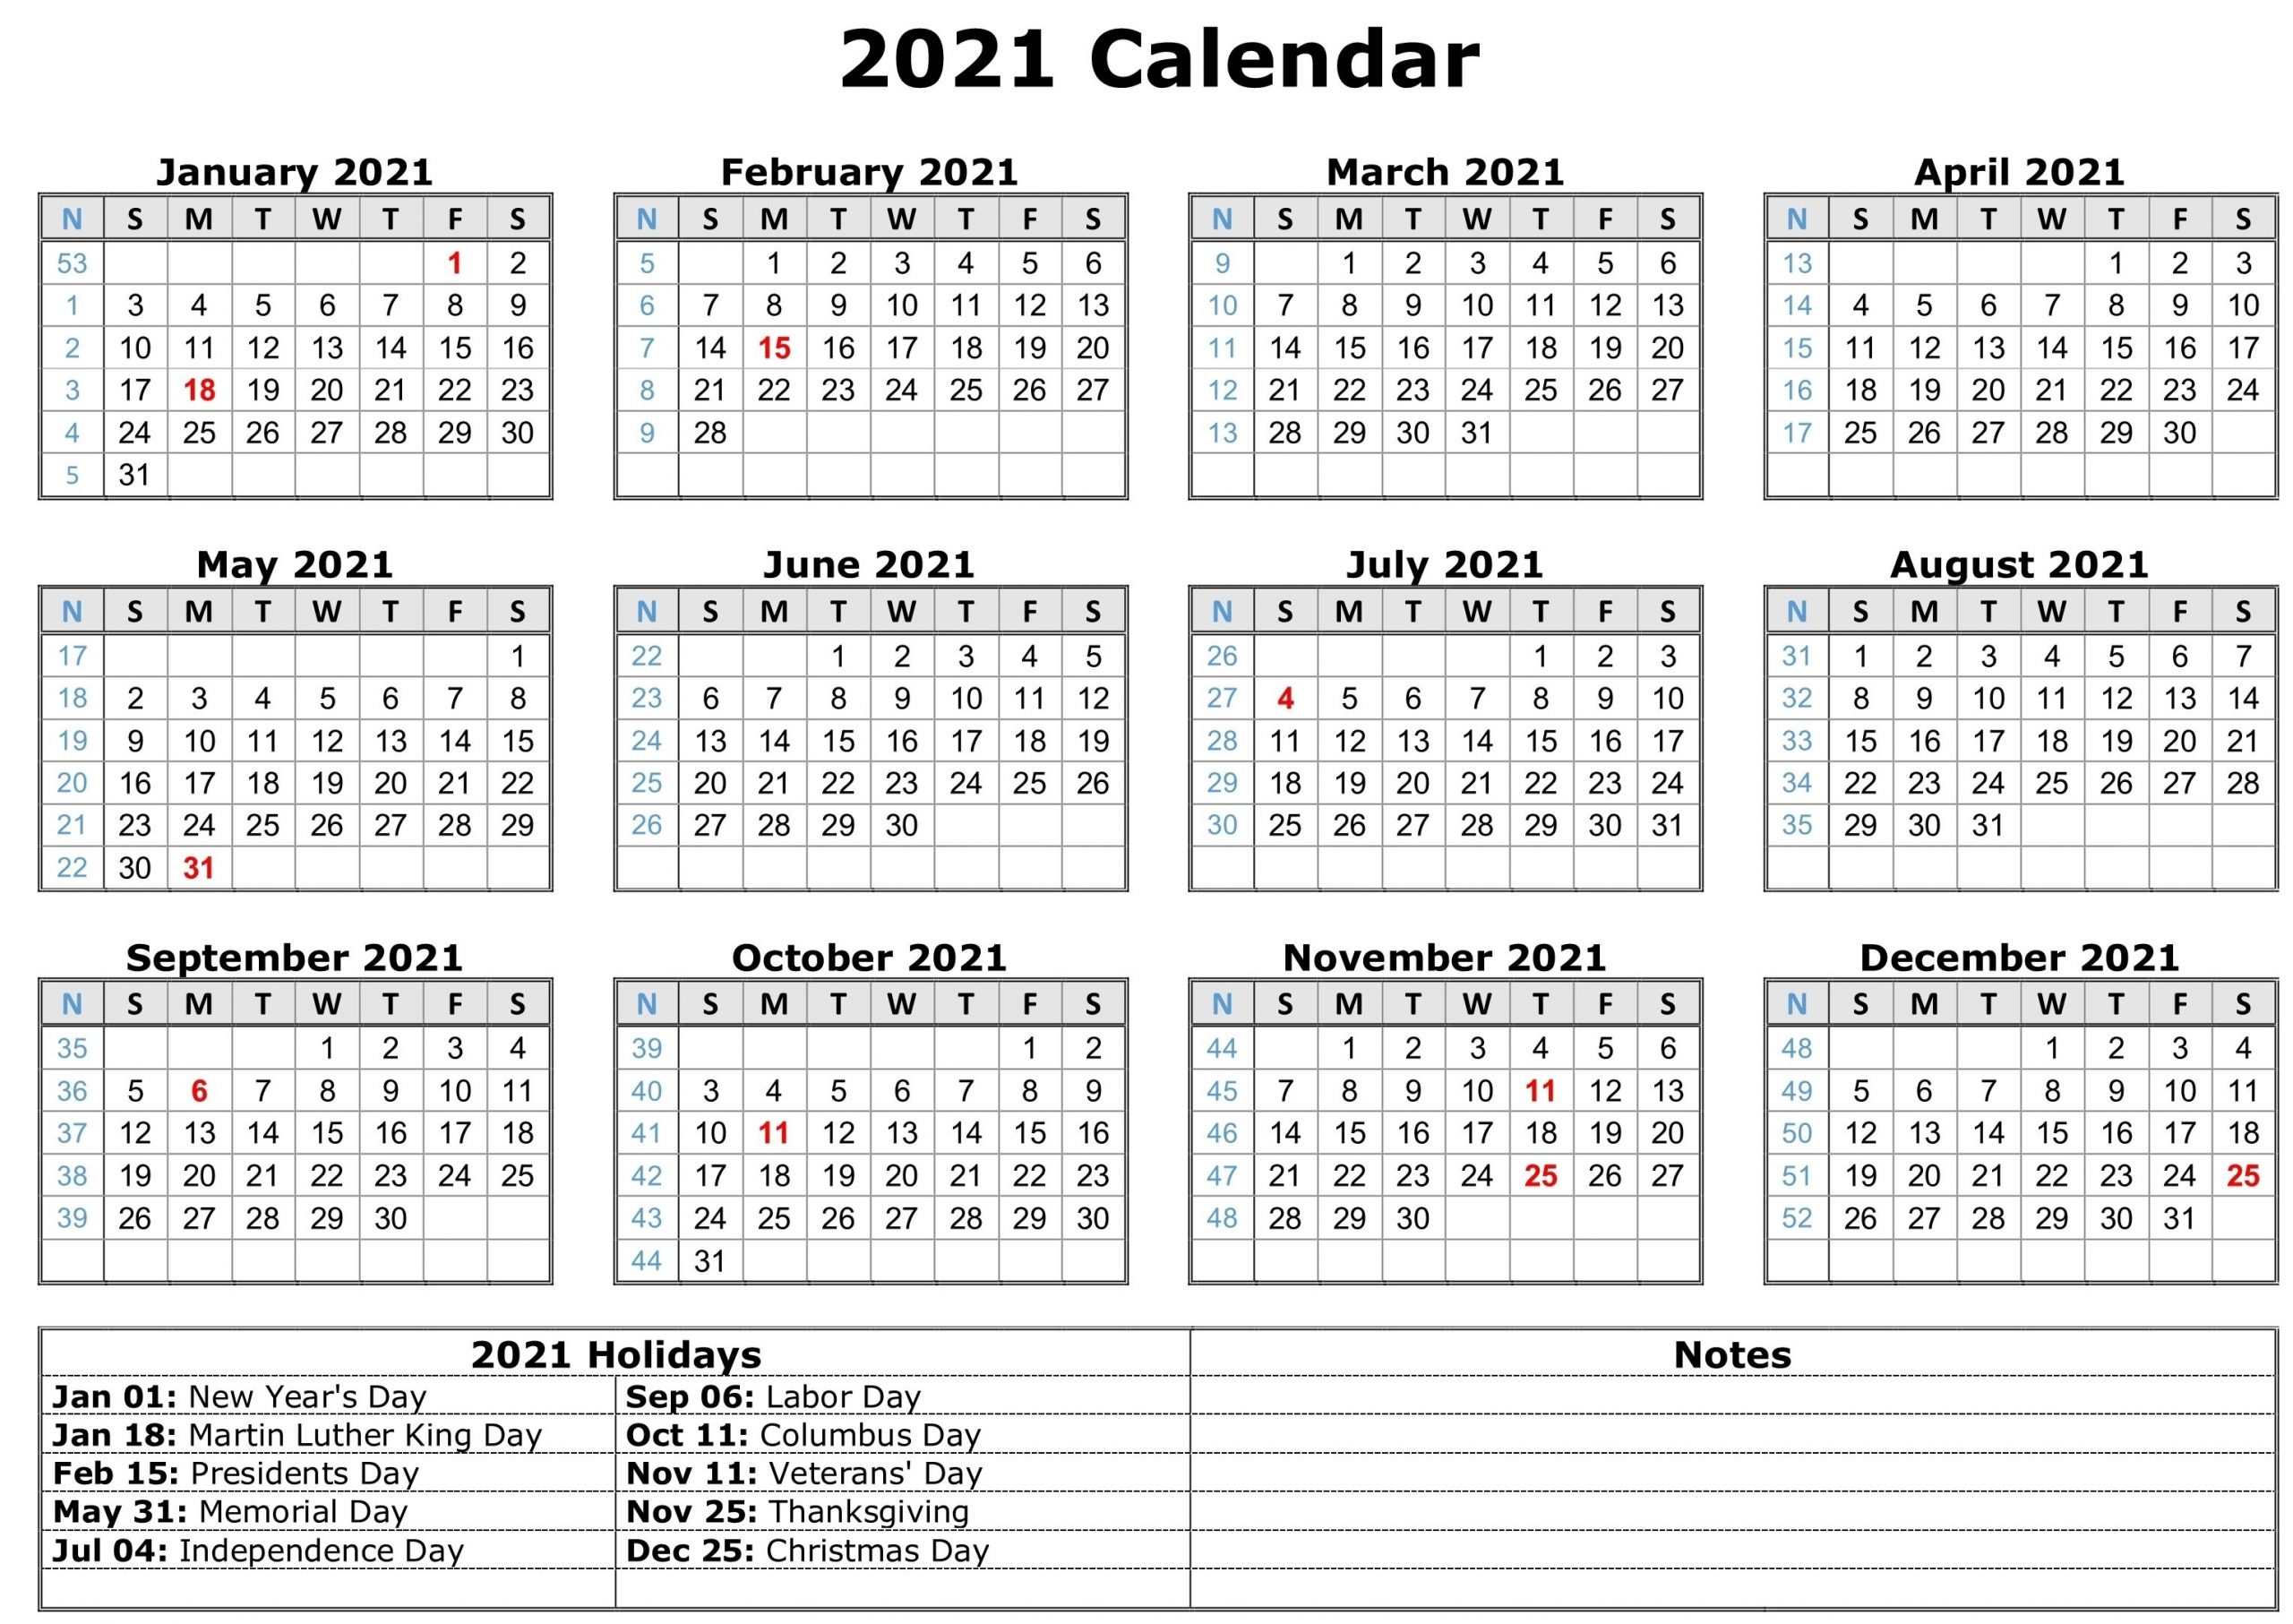 Get 2021 Calendars To Print Without